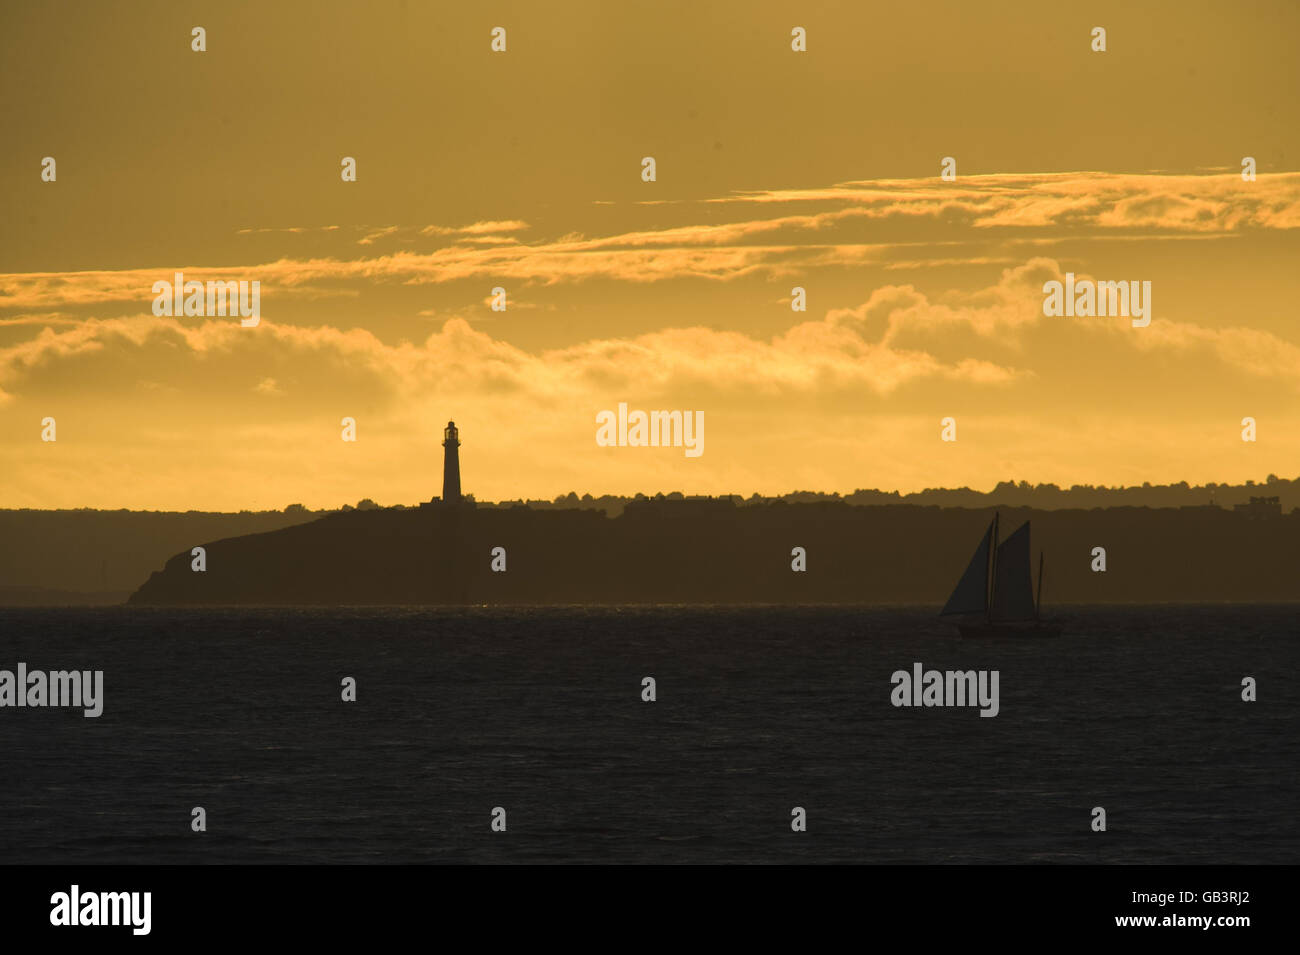 The sun casts a golden glow as it sets over Flatholme lighthouse situated in the Bristol Channel between Weston-super-Mare and Cardiff bringing some welcomed relief after the recent poor weather that has covered much of the UK. Stock Photo